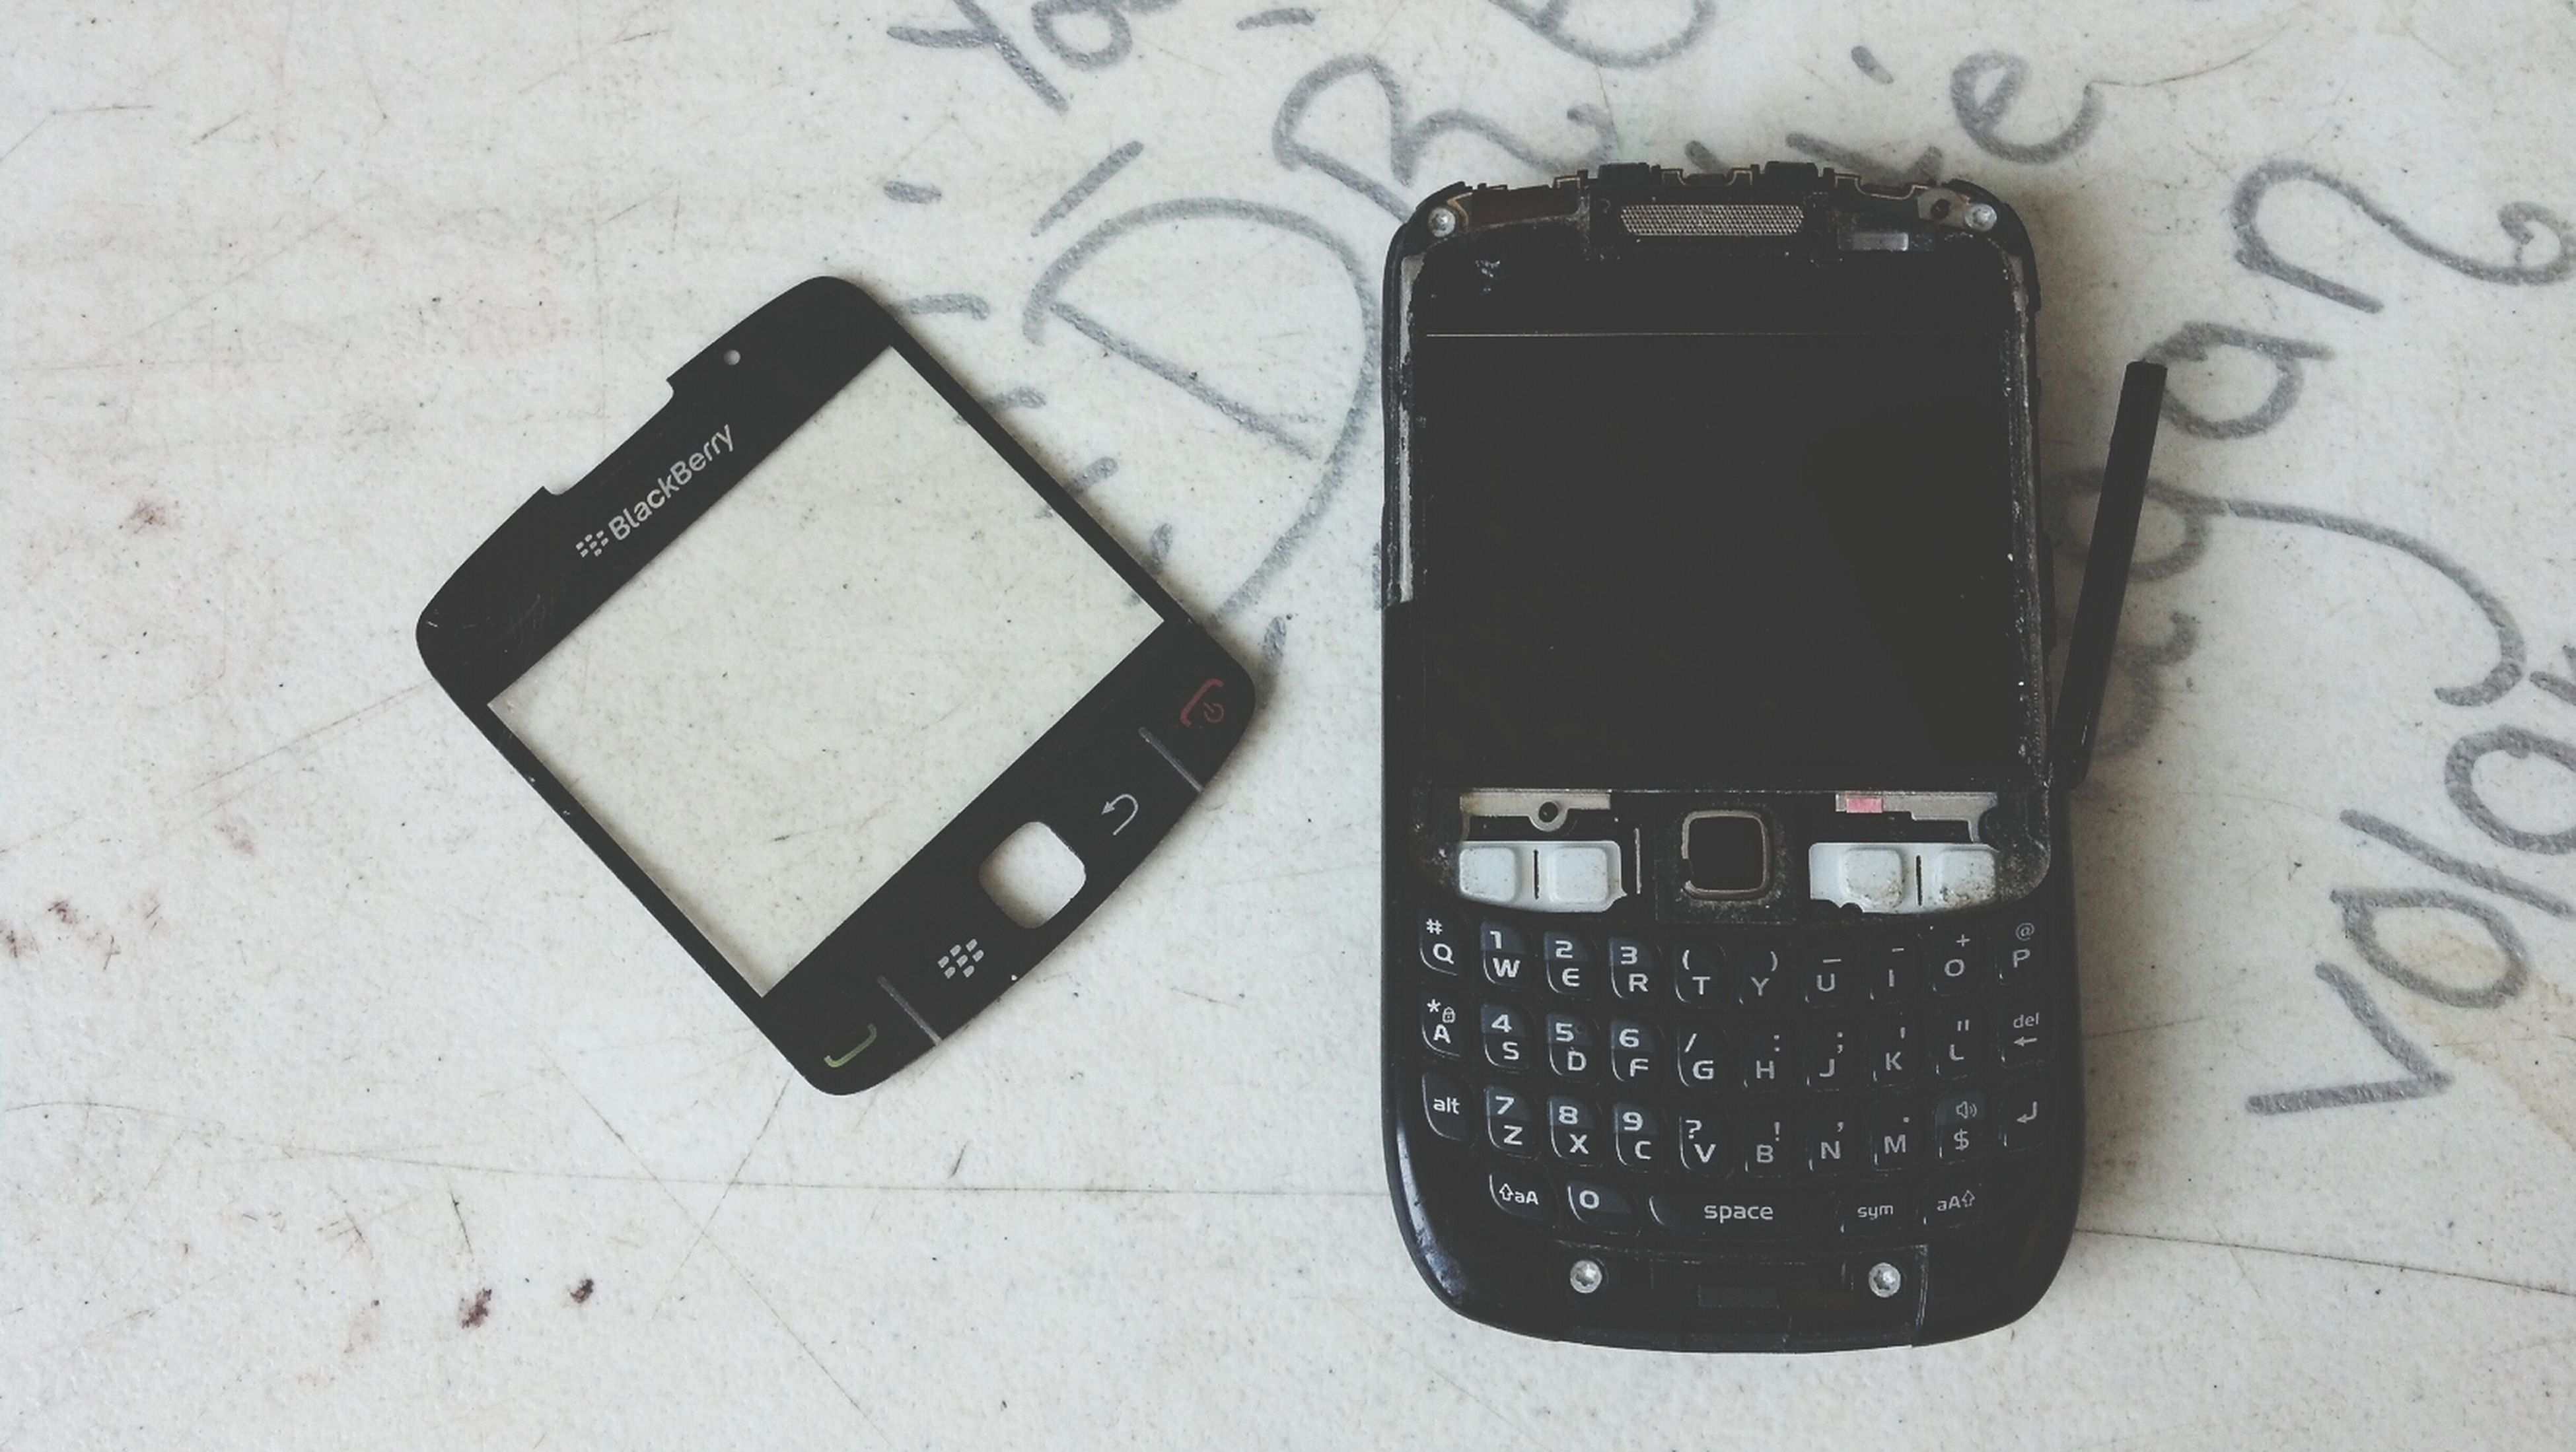 indoors, technology, communication, close-up, still life, high angle view, number, connection, table, text, retro styled, computer keyboard, wireless technology, no people, old-fashioned, black color, telephone, single object, equipment, metal